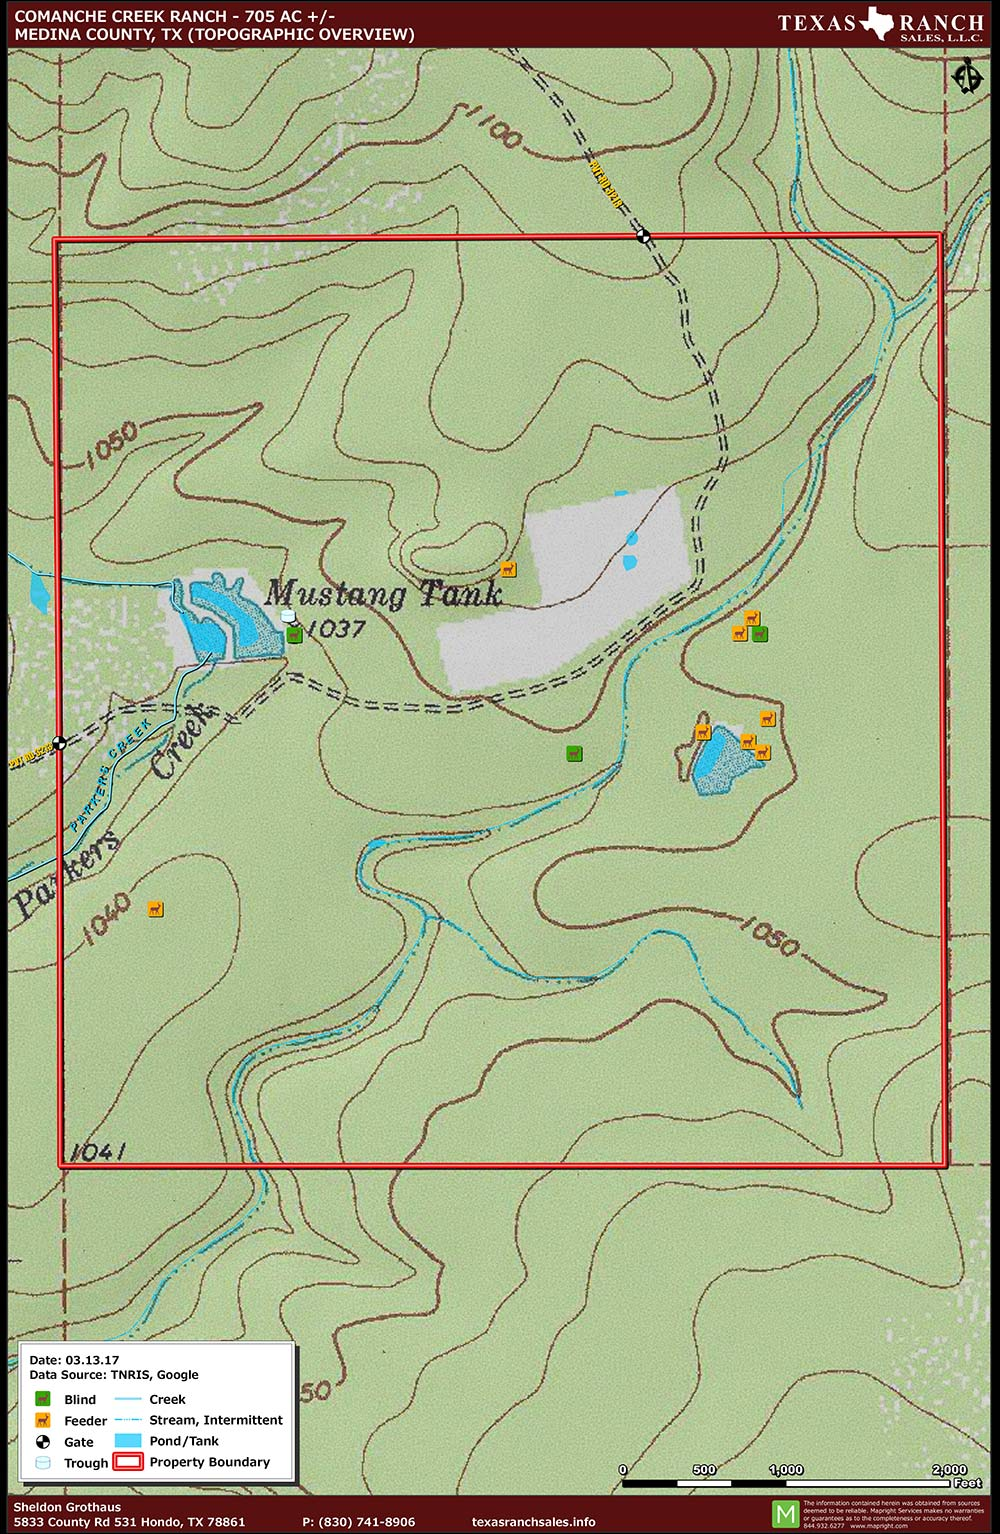 705 Acre Ranch Medina Topography Map